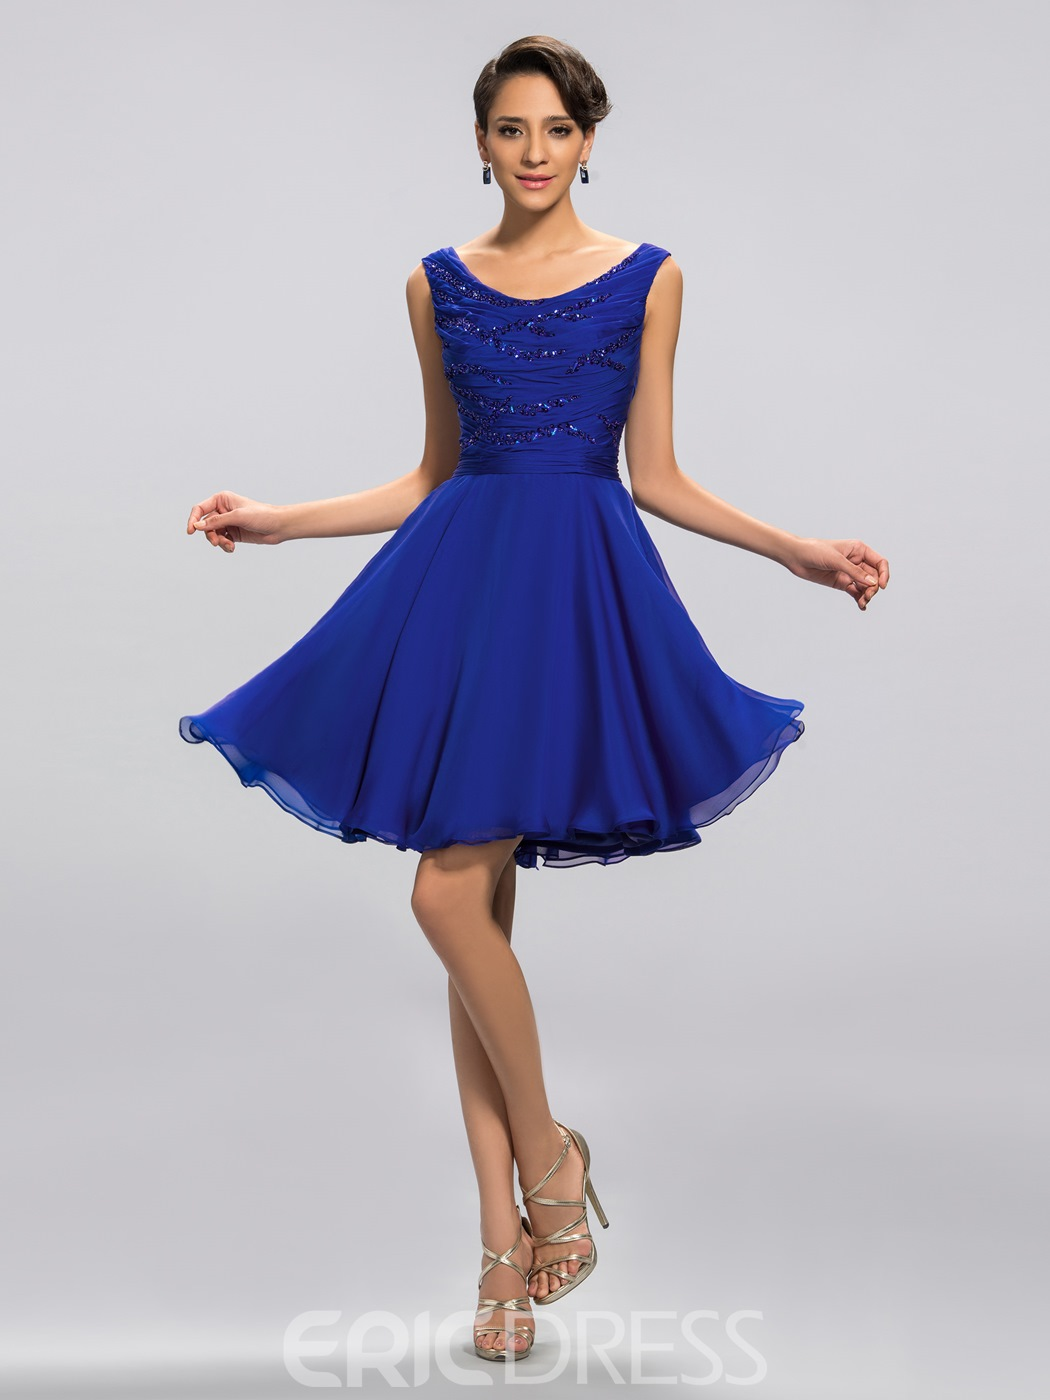 Charming Scoop Neck Beading Knee-Length Cocktail Dress